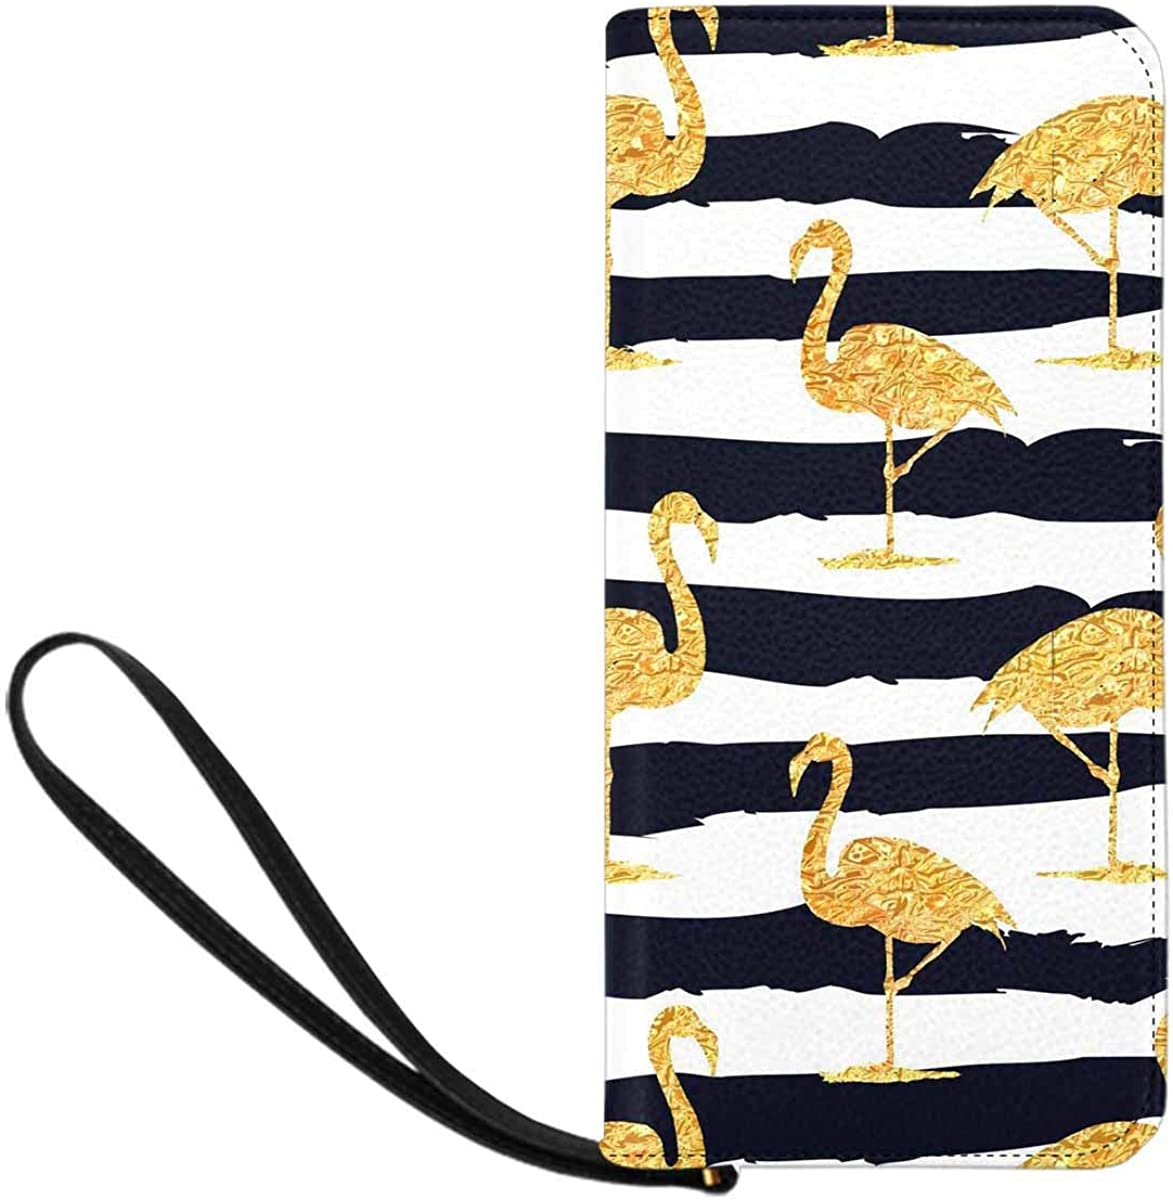 InterestPrint Women's Personalize Cellphone Purse with 8 RFID Card Slots Birds Pattern Light Green Blue Colors